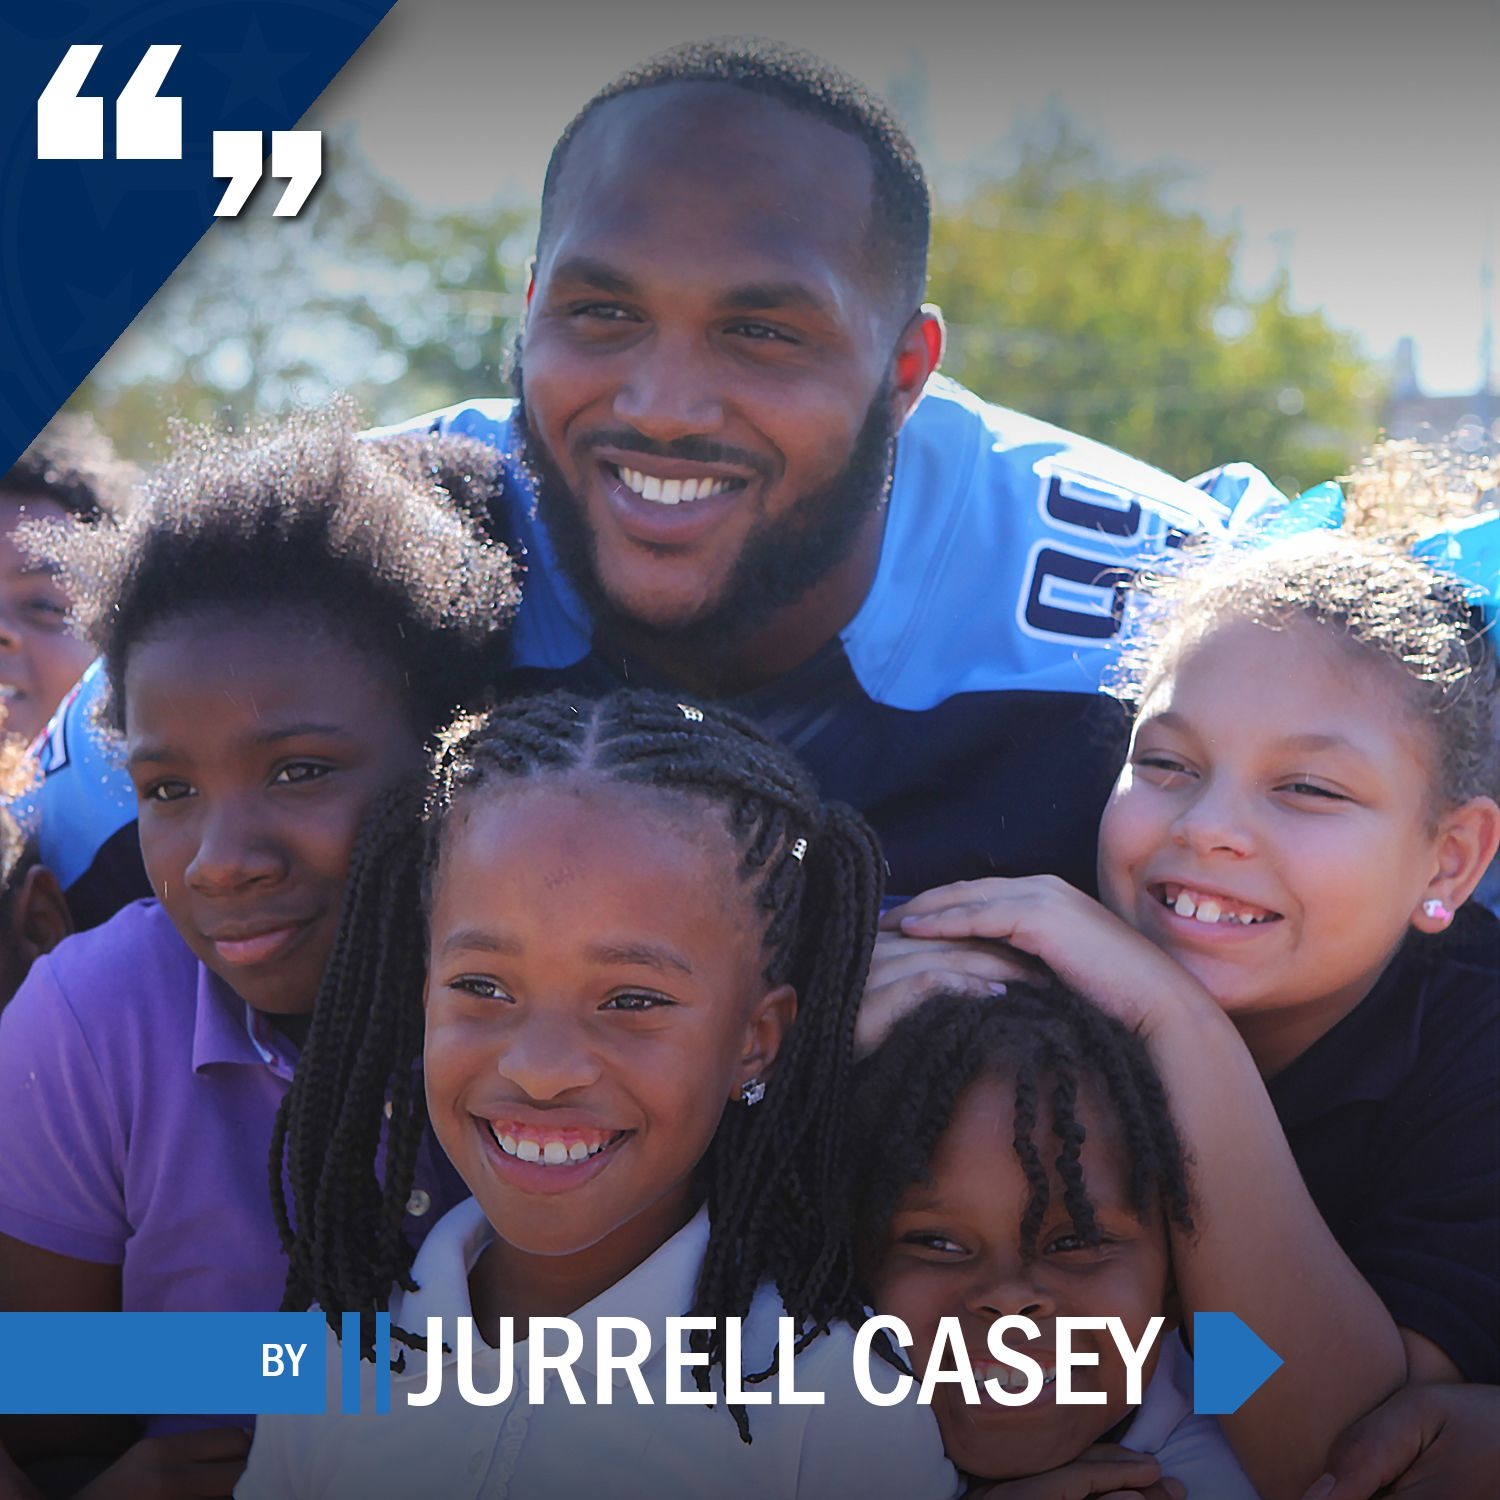 jurrell-casey-players-1500-2